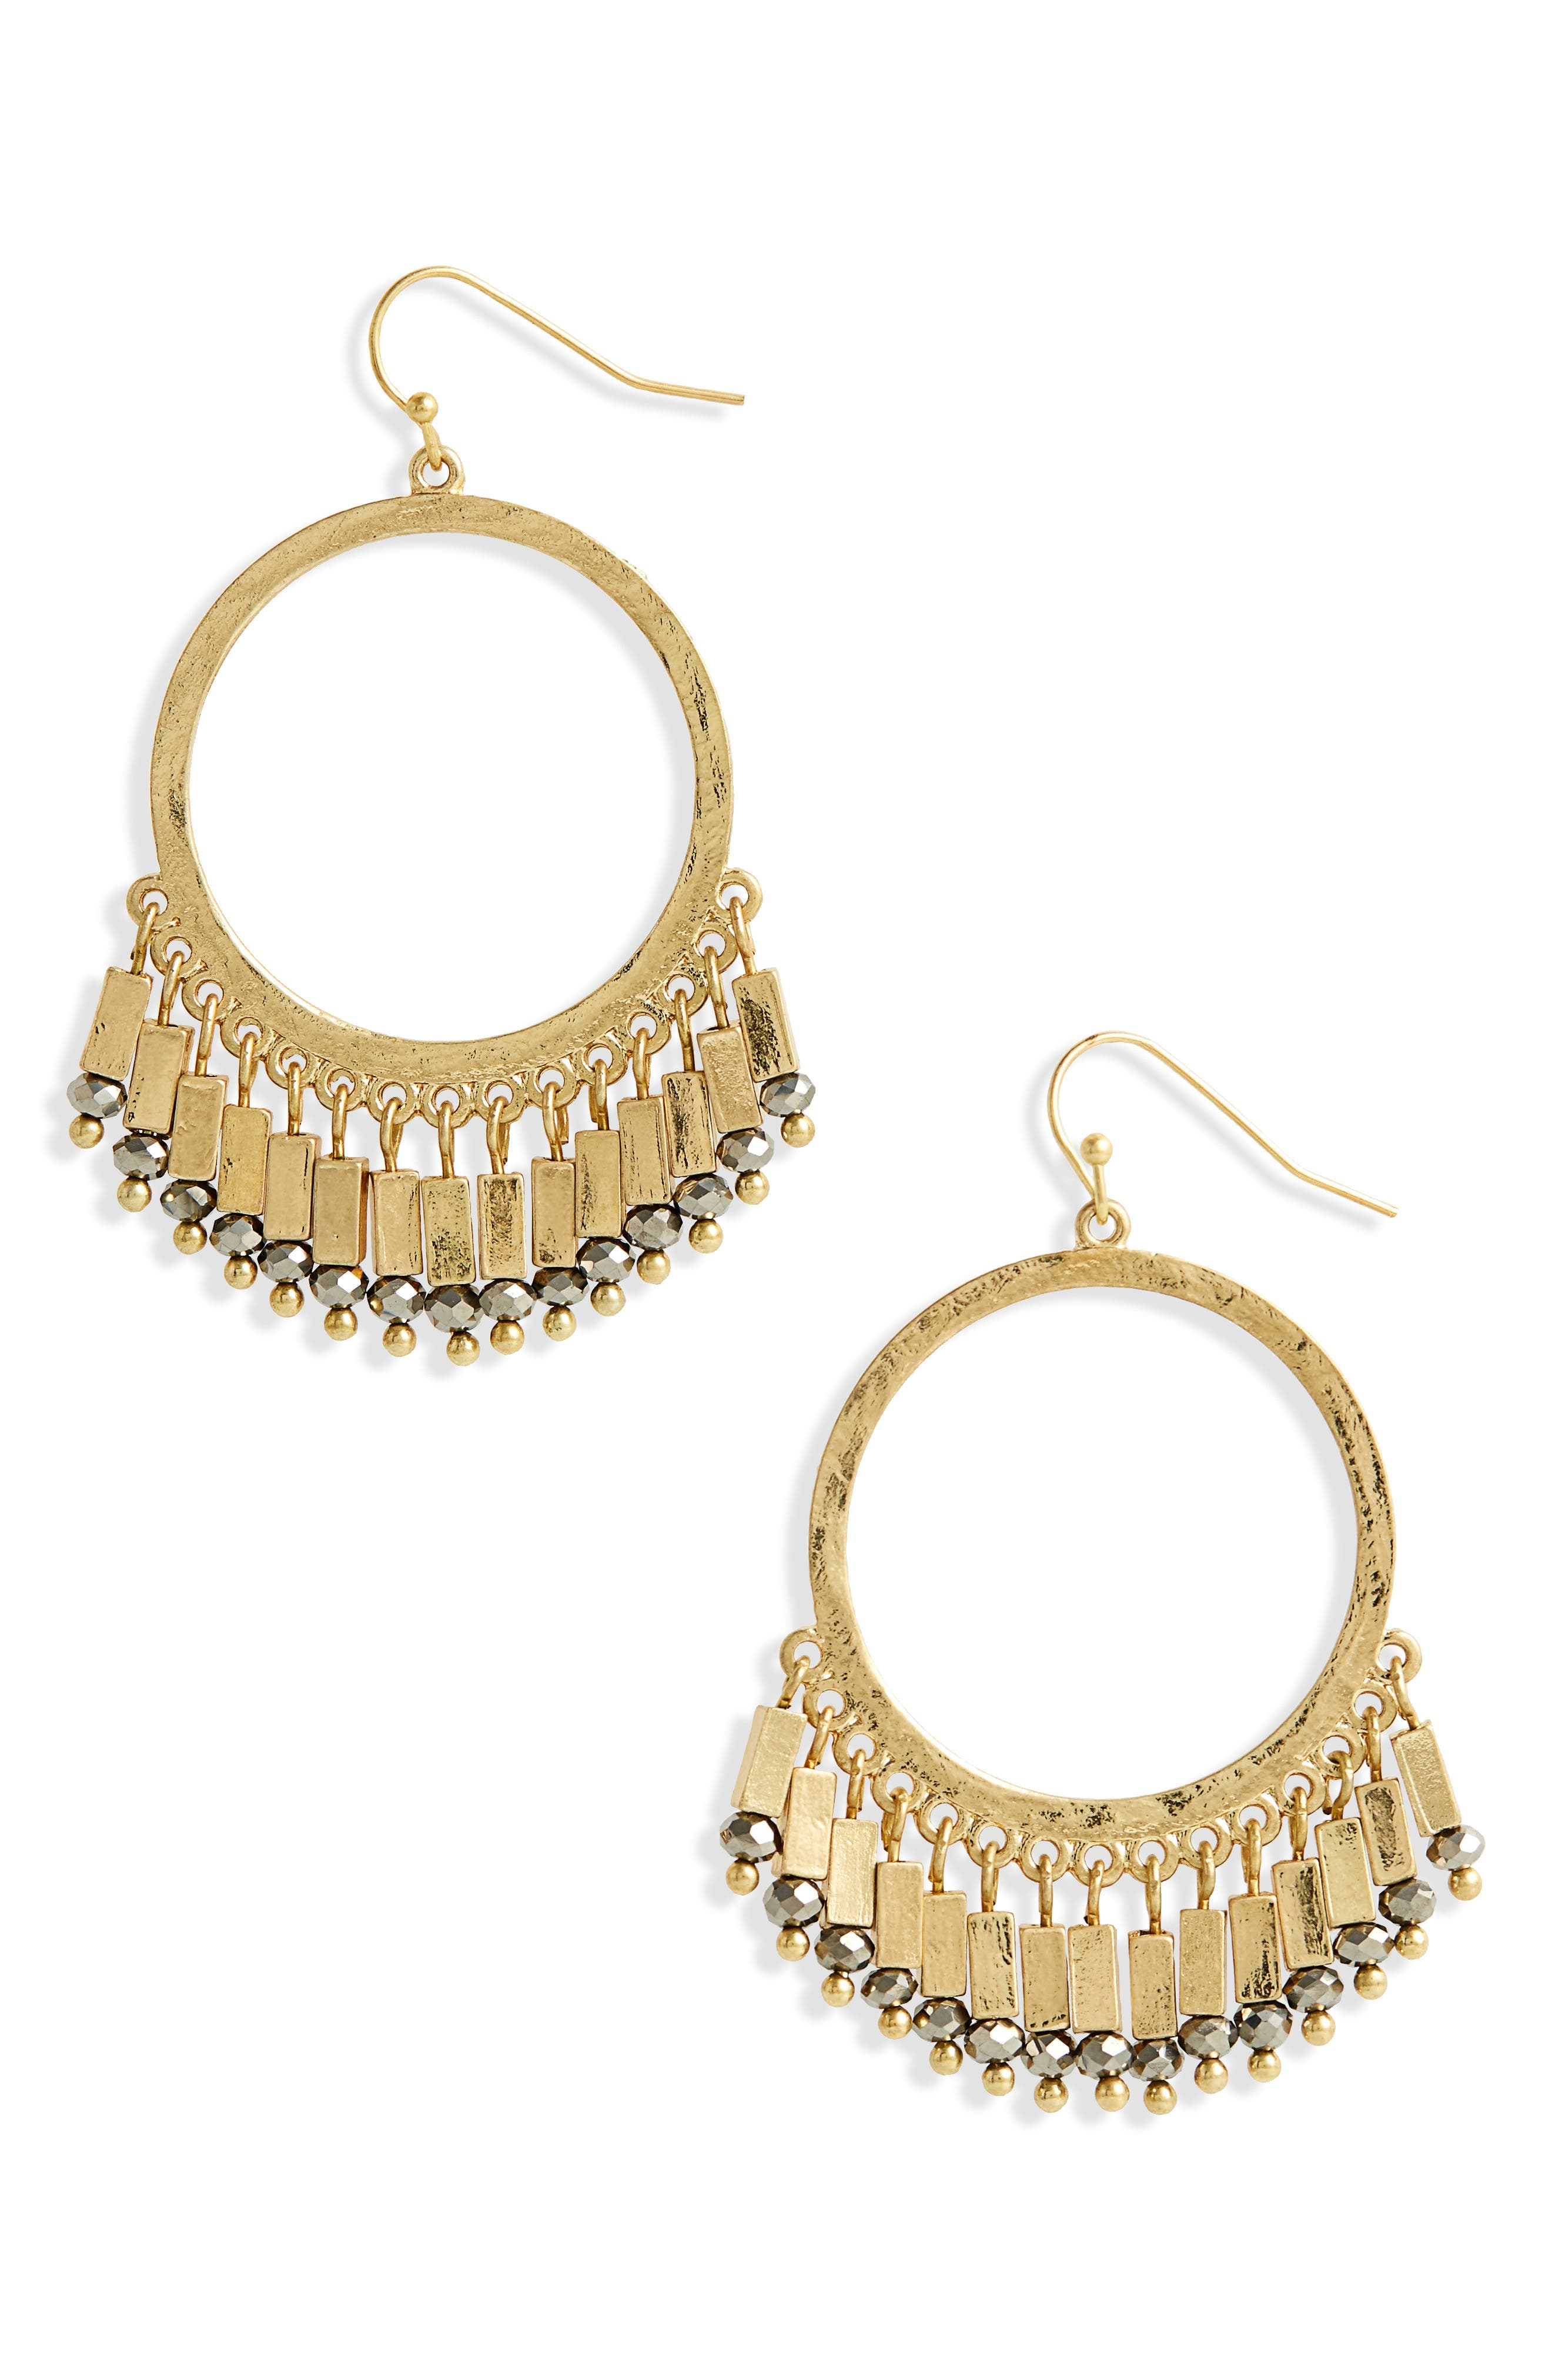 Beaded Hoop Earrings,                             Main thumbnail 1, color,                             710